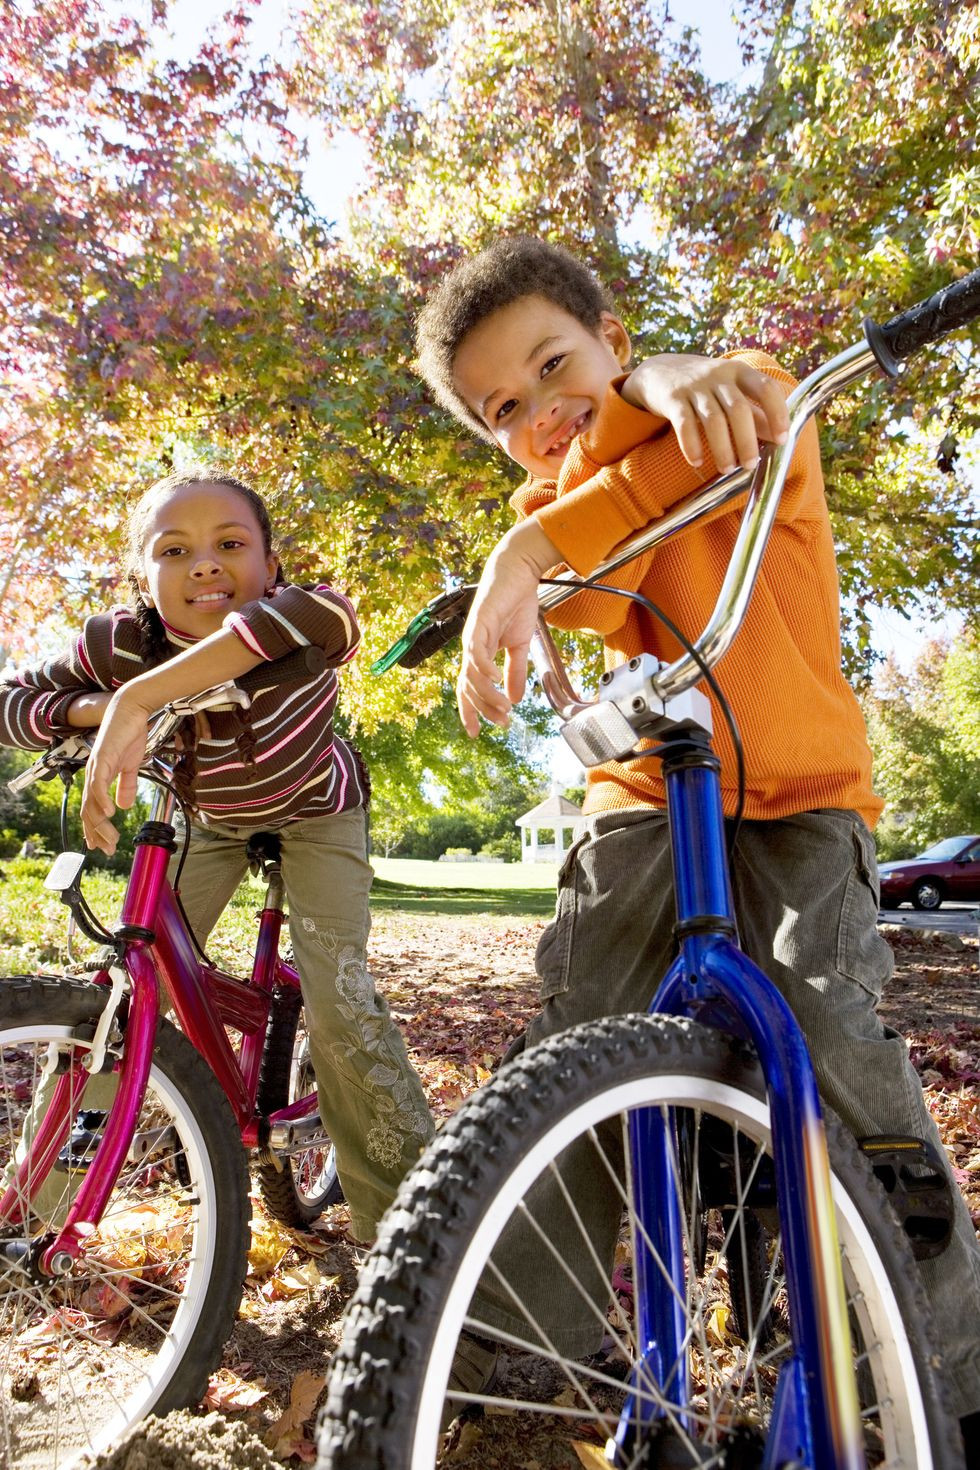 smiling-children-riding-bikes-in-autumn-park-at-royalty-free-image-1603380294.jpg